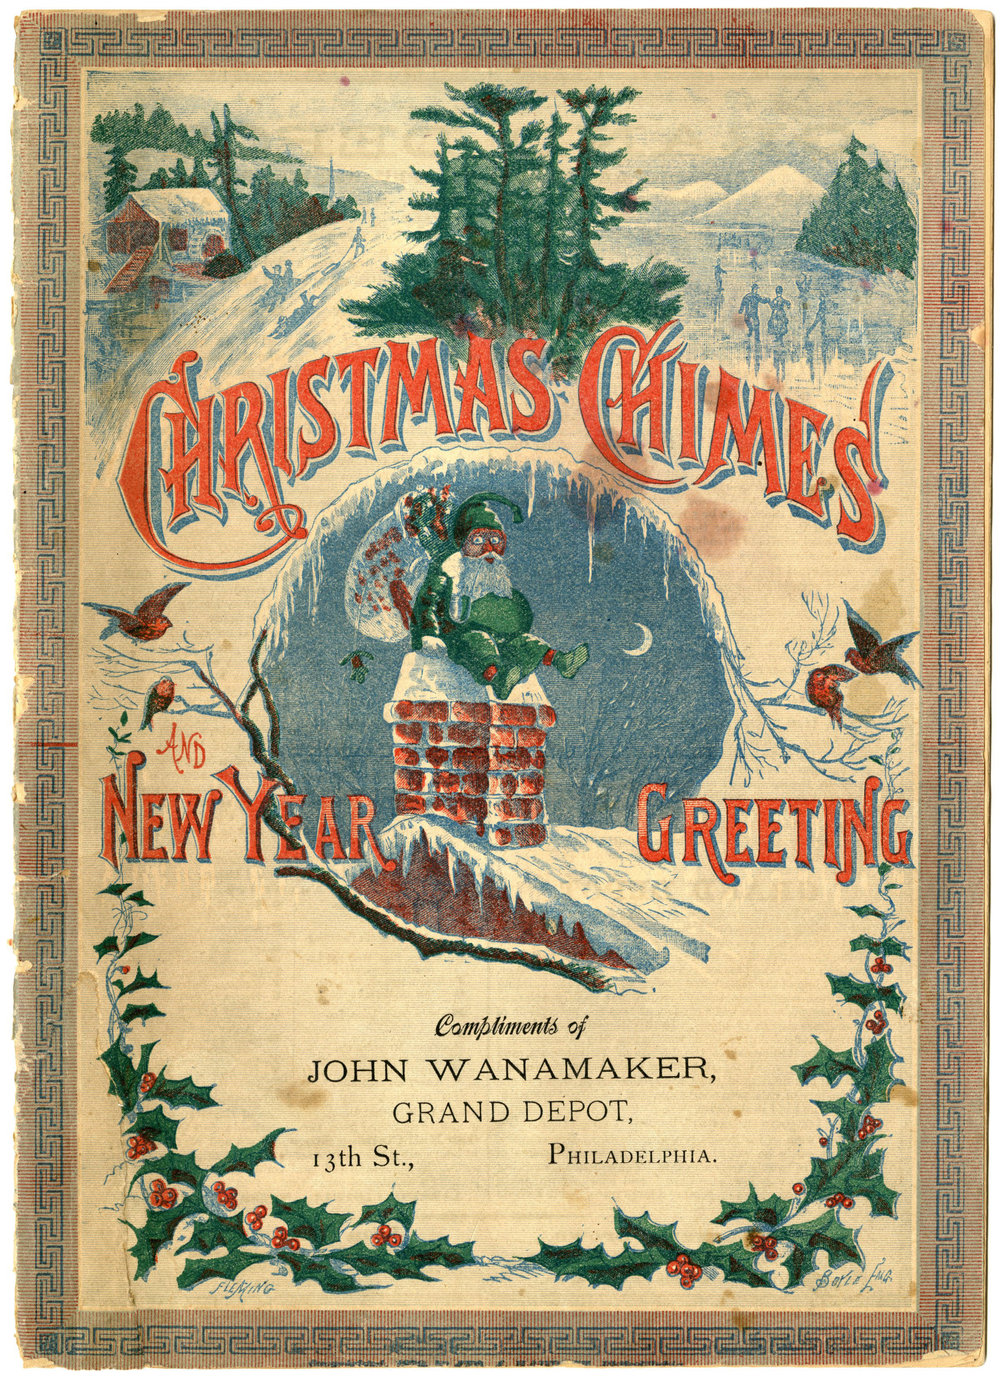 Figure 10: John Wanamaker published the first department store Christmas giveaway booklet in Philadelphia in 1879. Santa Claus is depicted on the cover in a green suit, going down the chimney. This eighteen-page booklet, which includes only two pages of advertising, features Christmas poems, stories, engravings and cartoons. On loan from the National Christmas Center and Museum, Lancaster, PA.